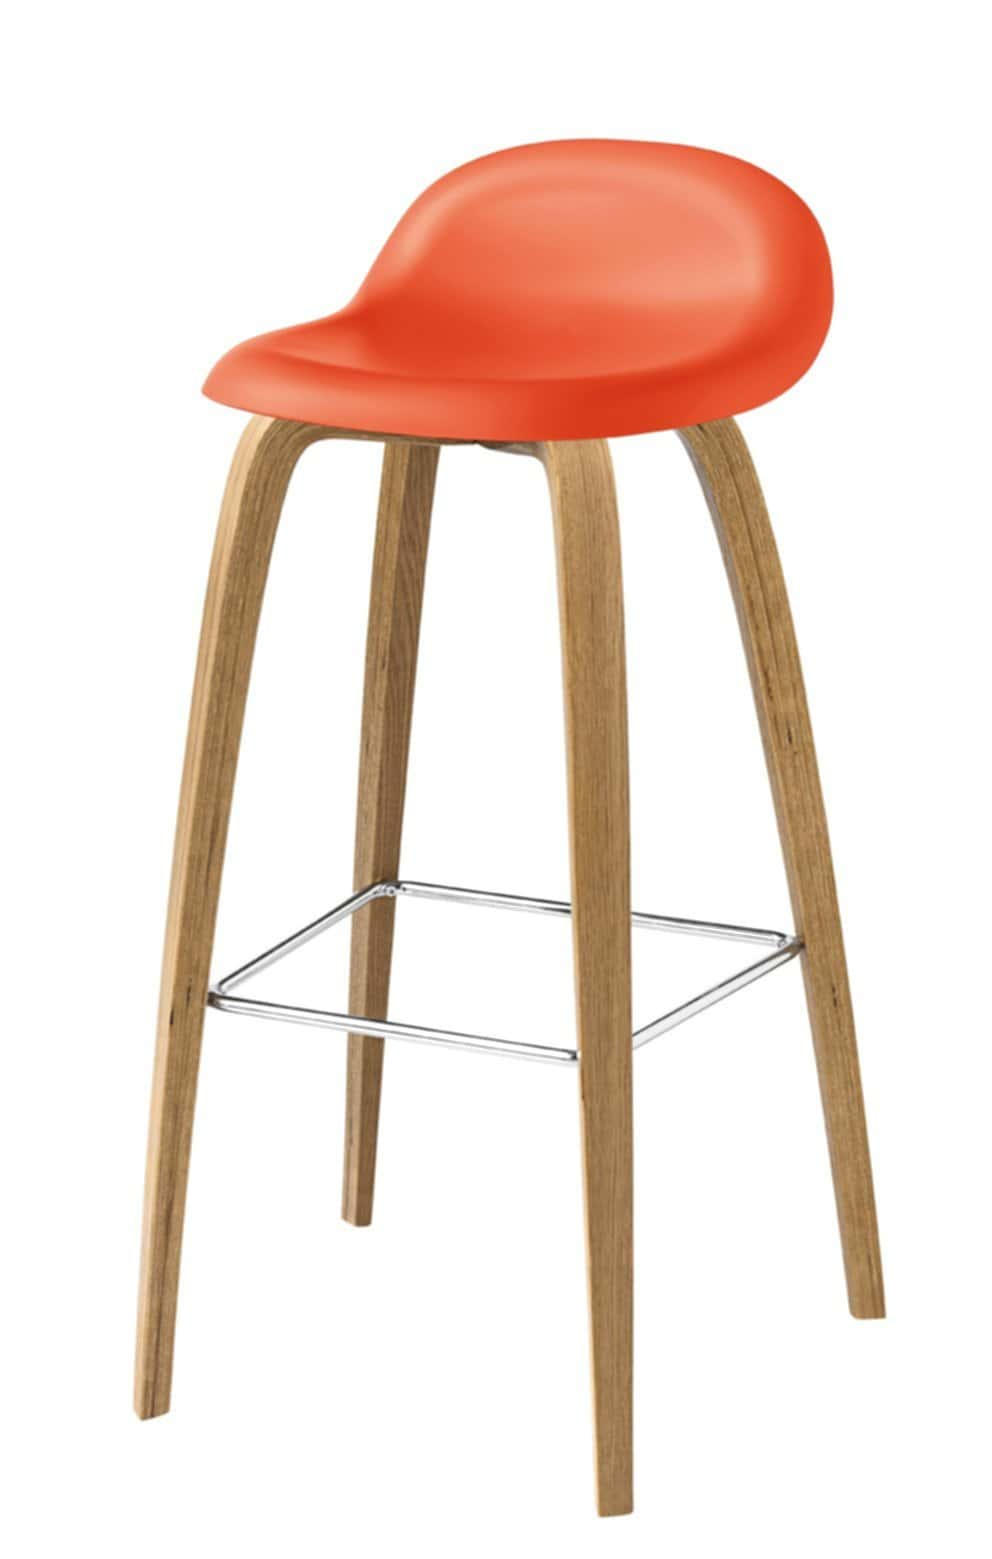 With Wooden Bar Stools Backs The Sweet Just